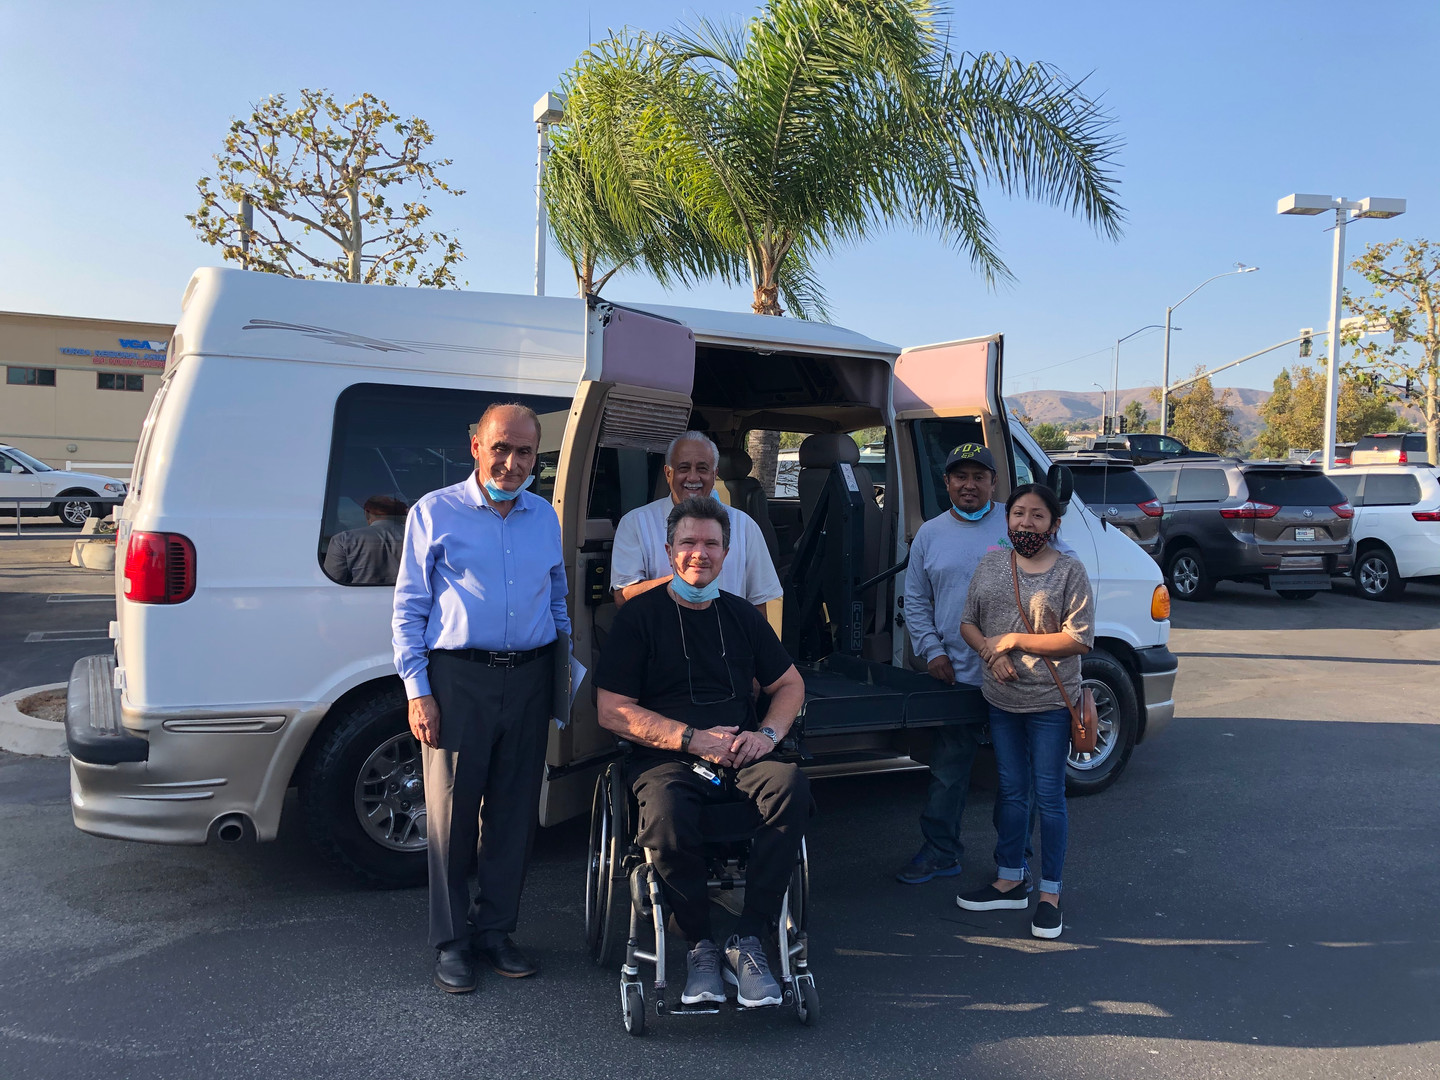 Thanks to AeroMobility for helping to adapt this Van to accomidate 2 Wheelchairs